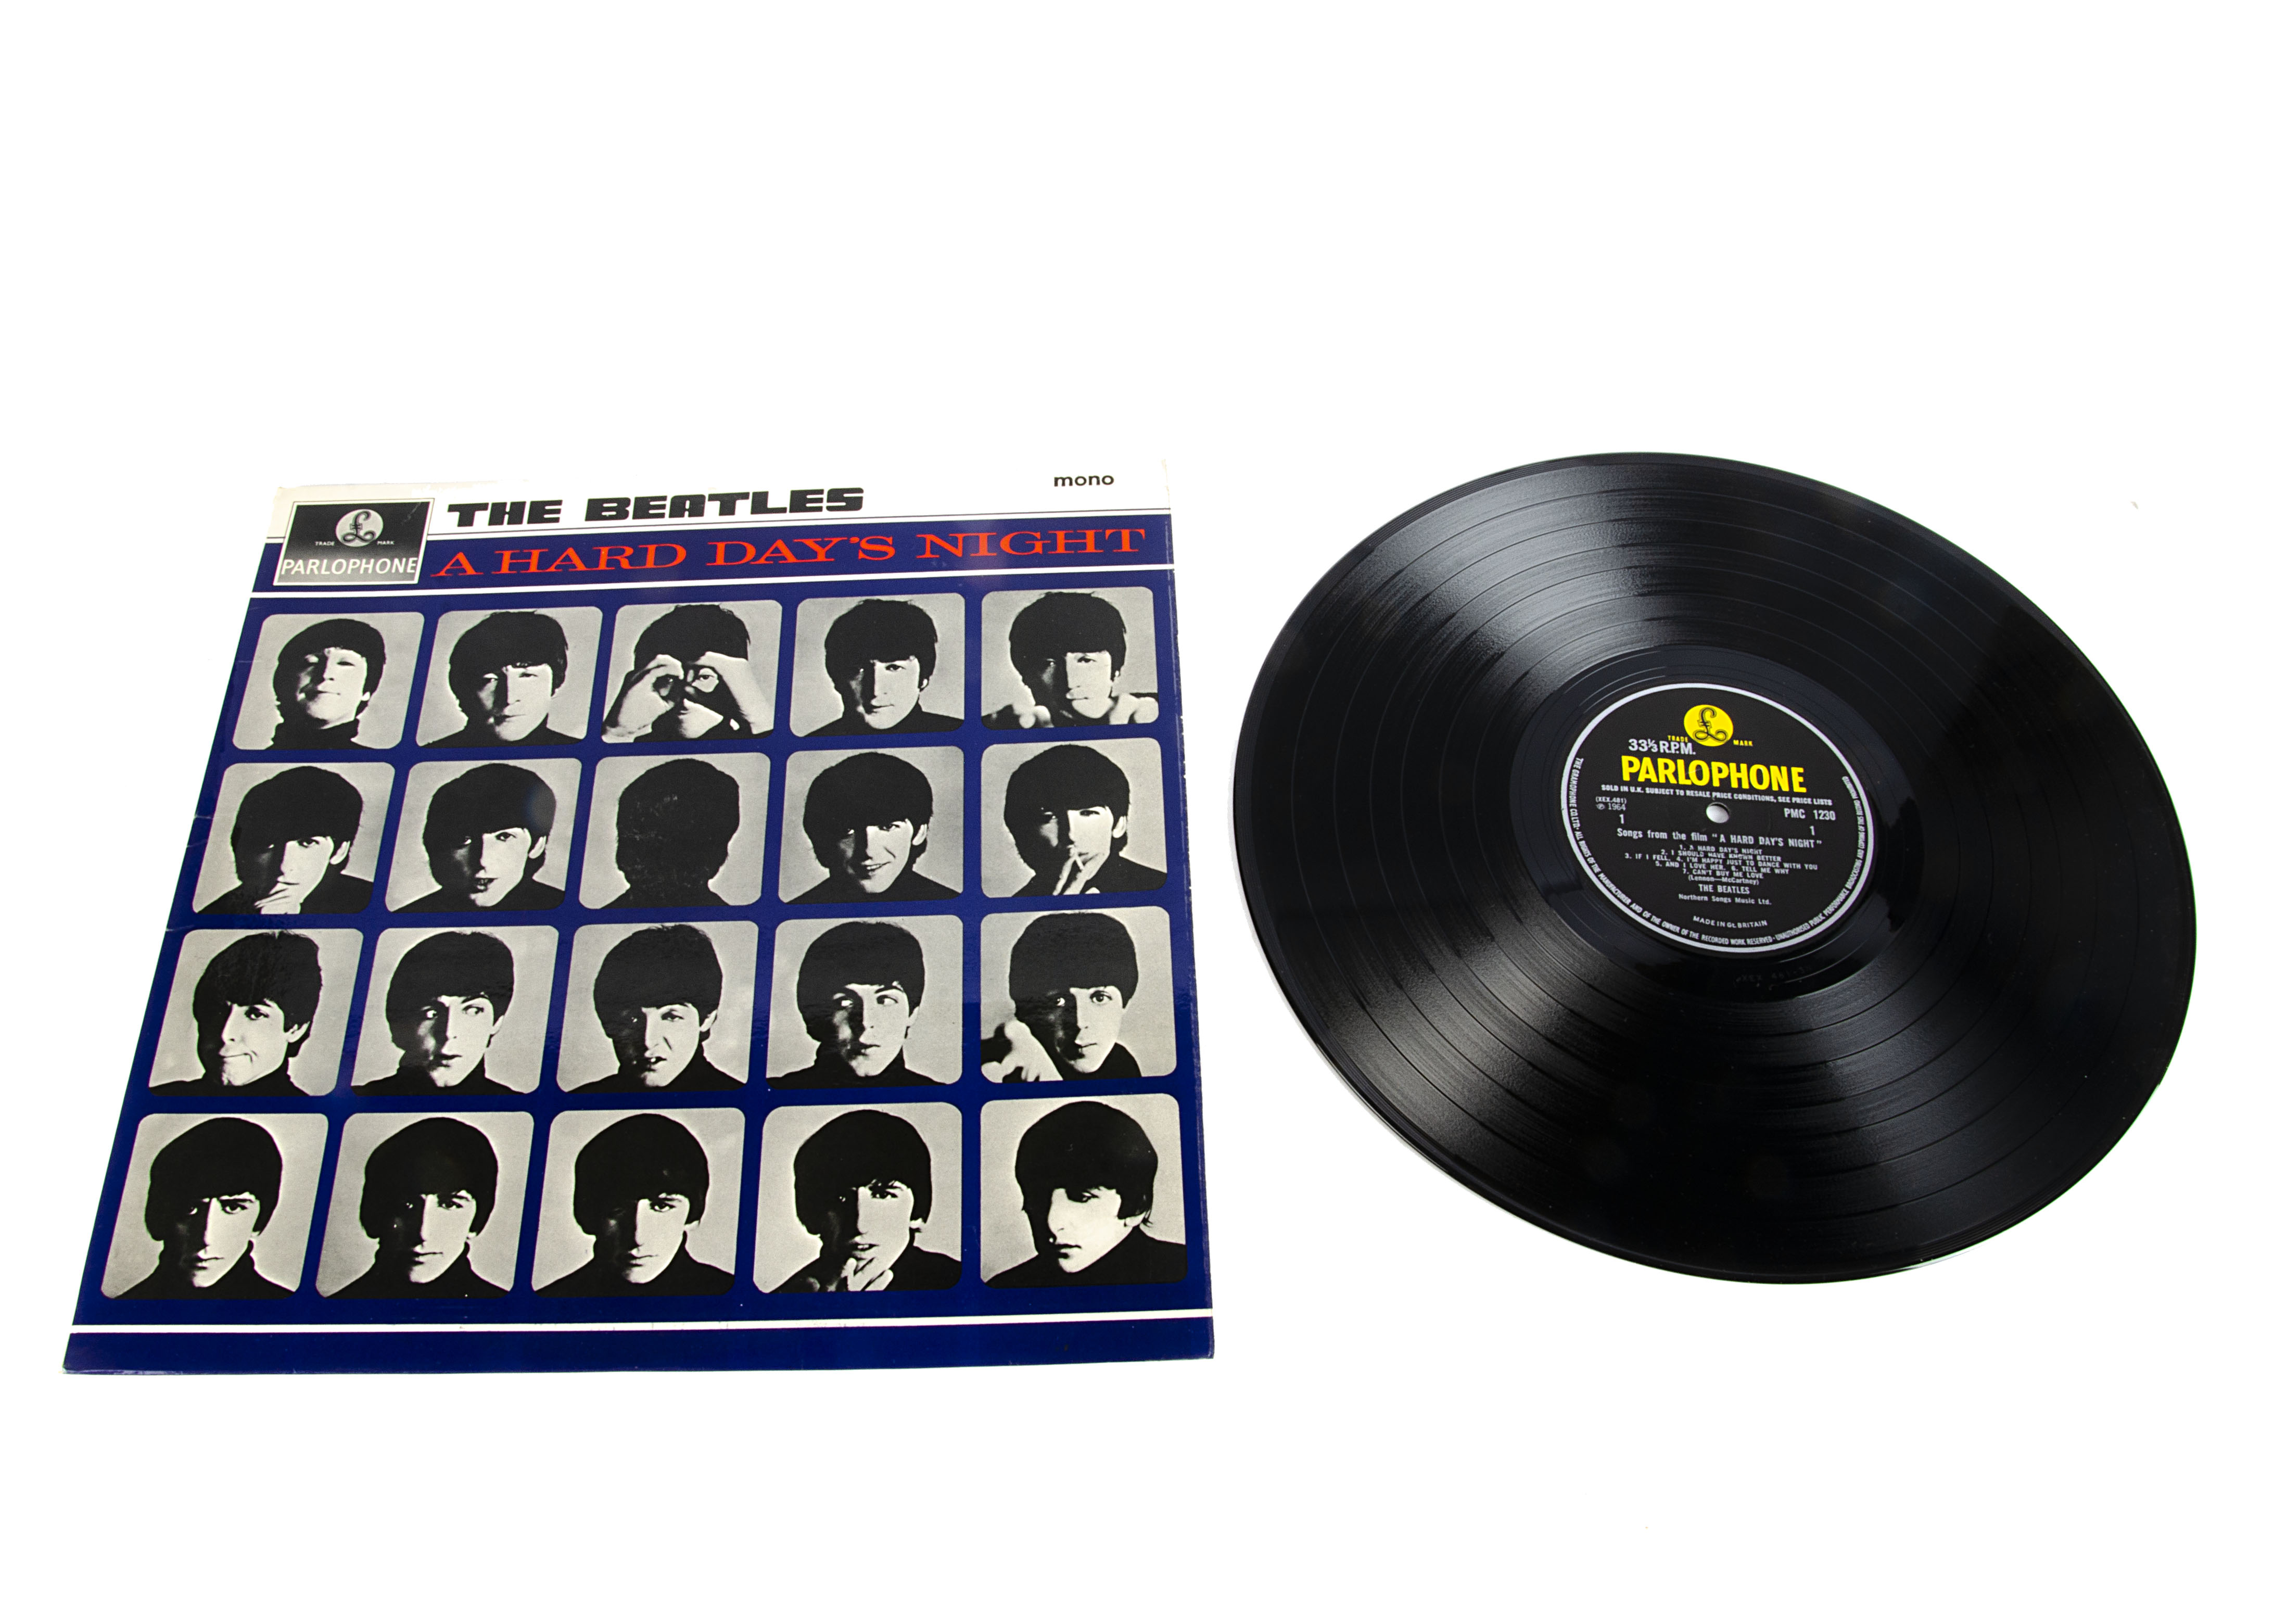 The Beatles LP, A Hard Day's Night LP - Original UK Mono release 1964 on Parlophone (PMC 1230) -